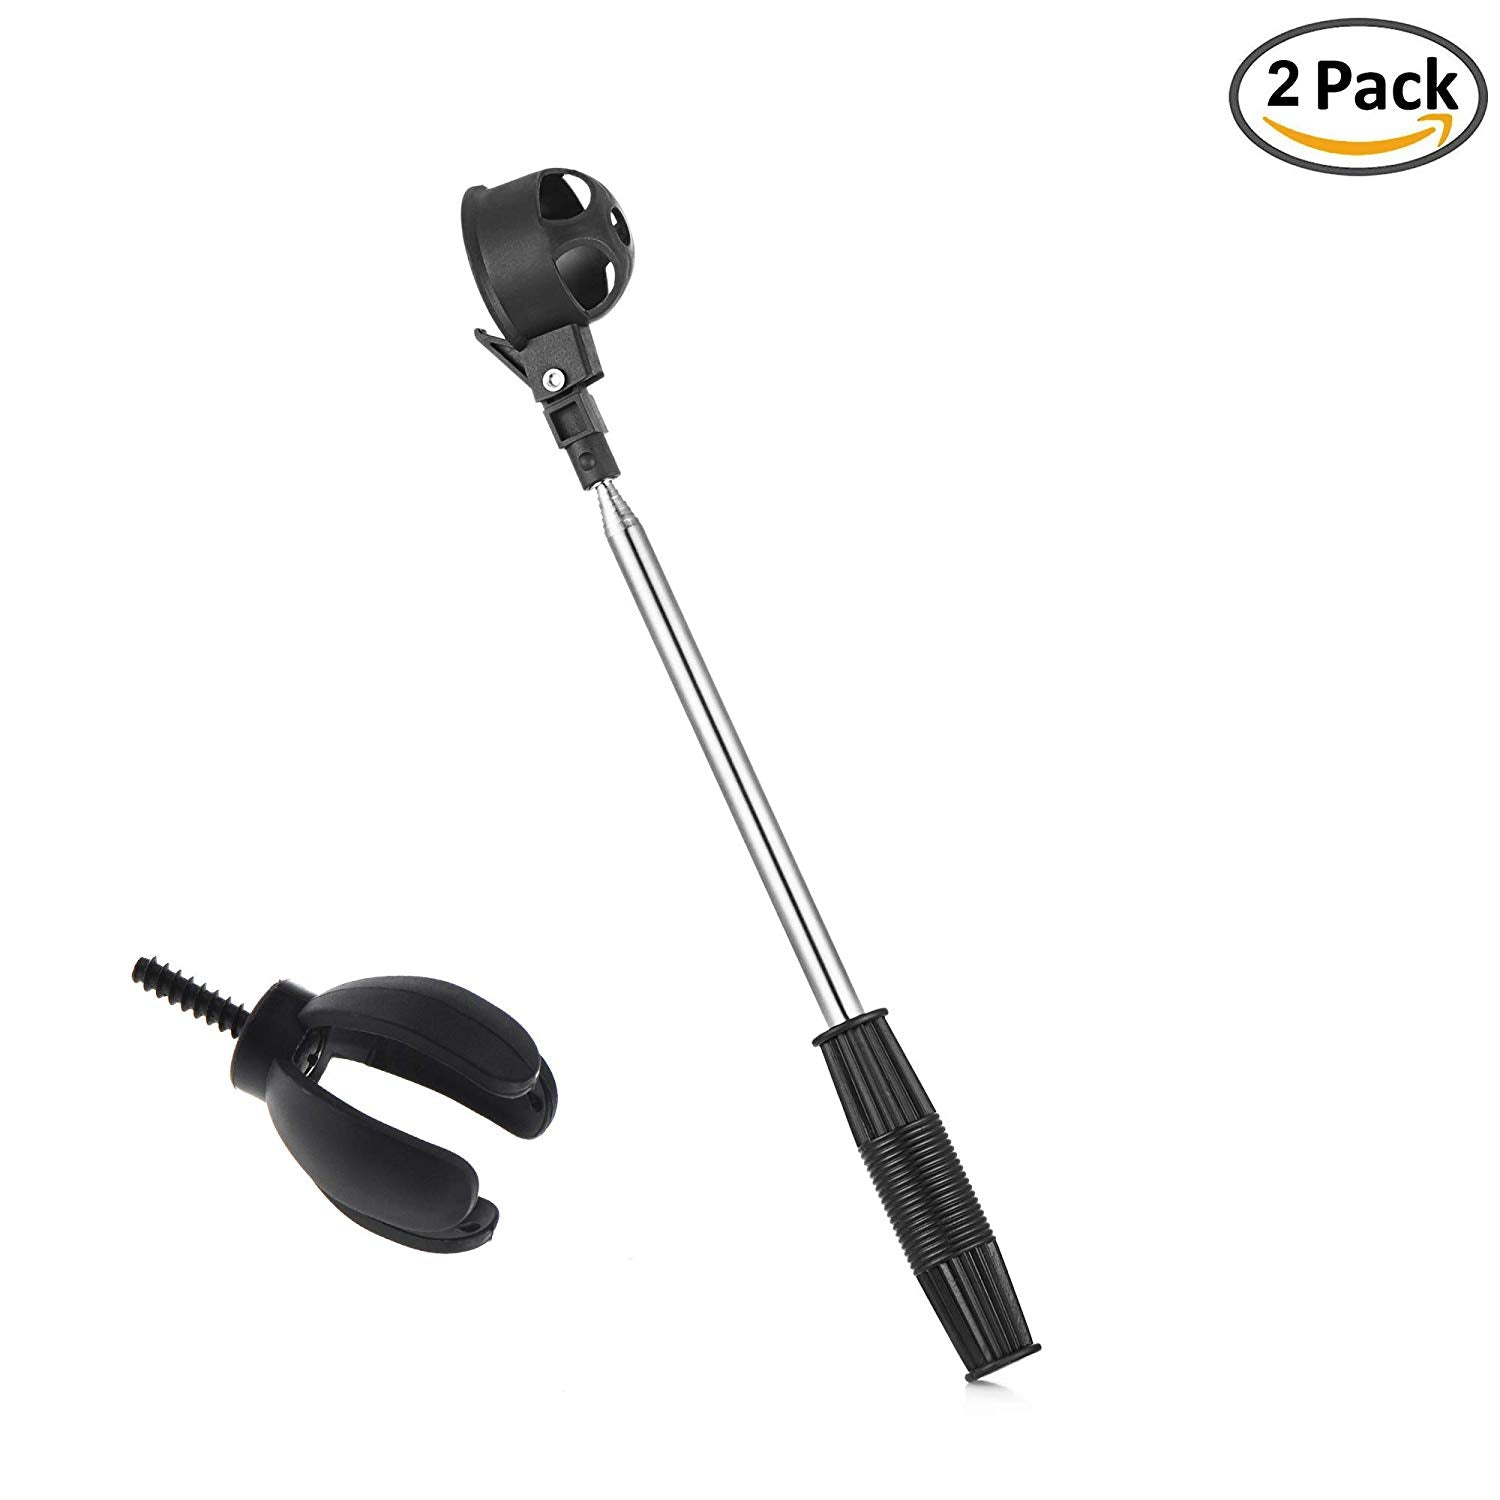 Telescopic golf ball retriever